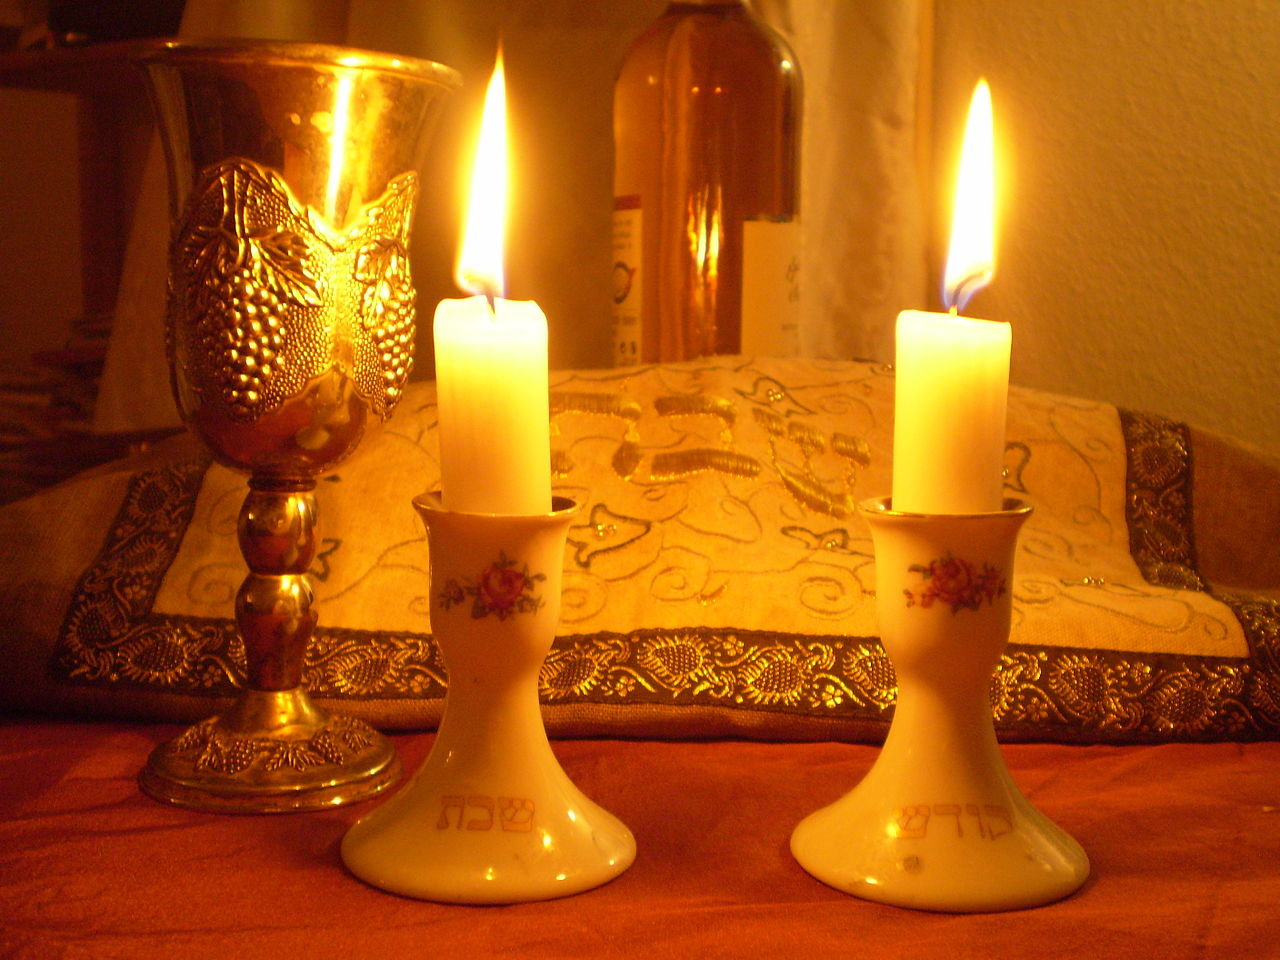 Shabbat dinner candles